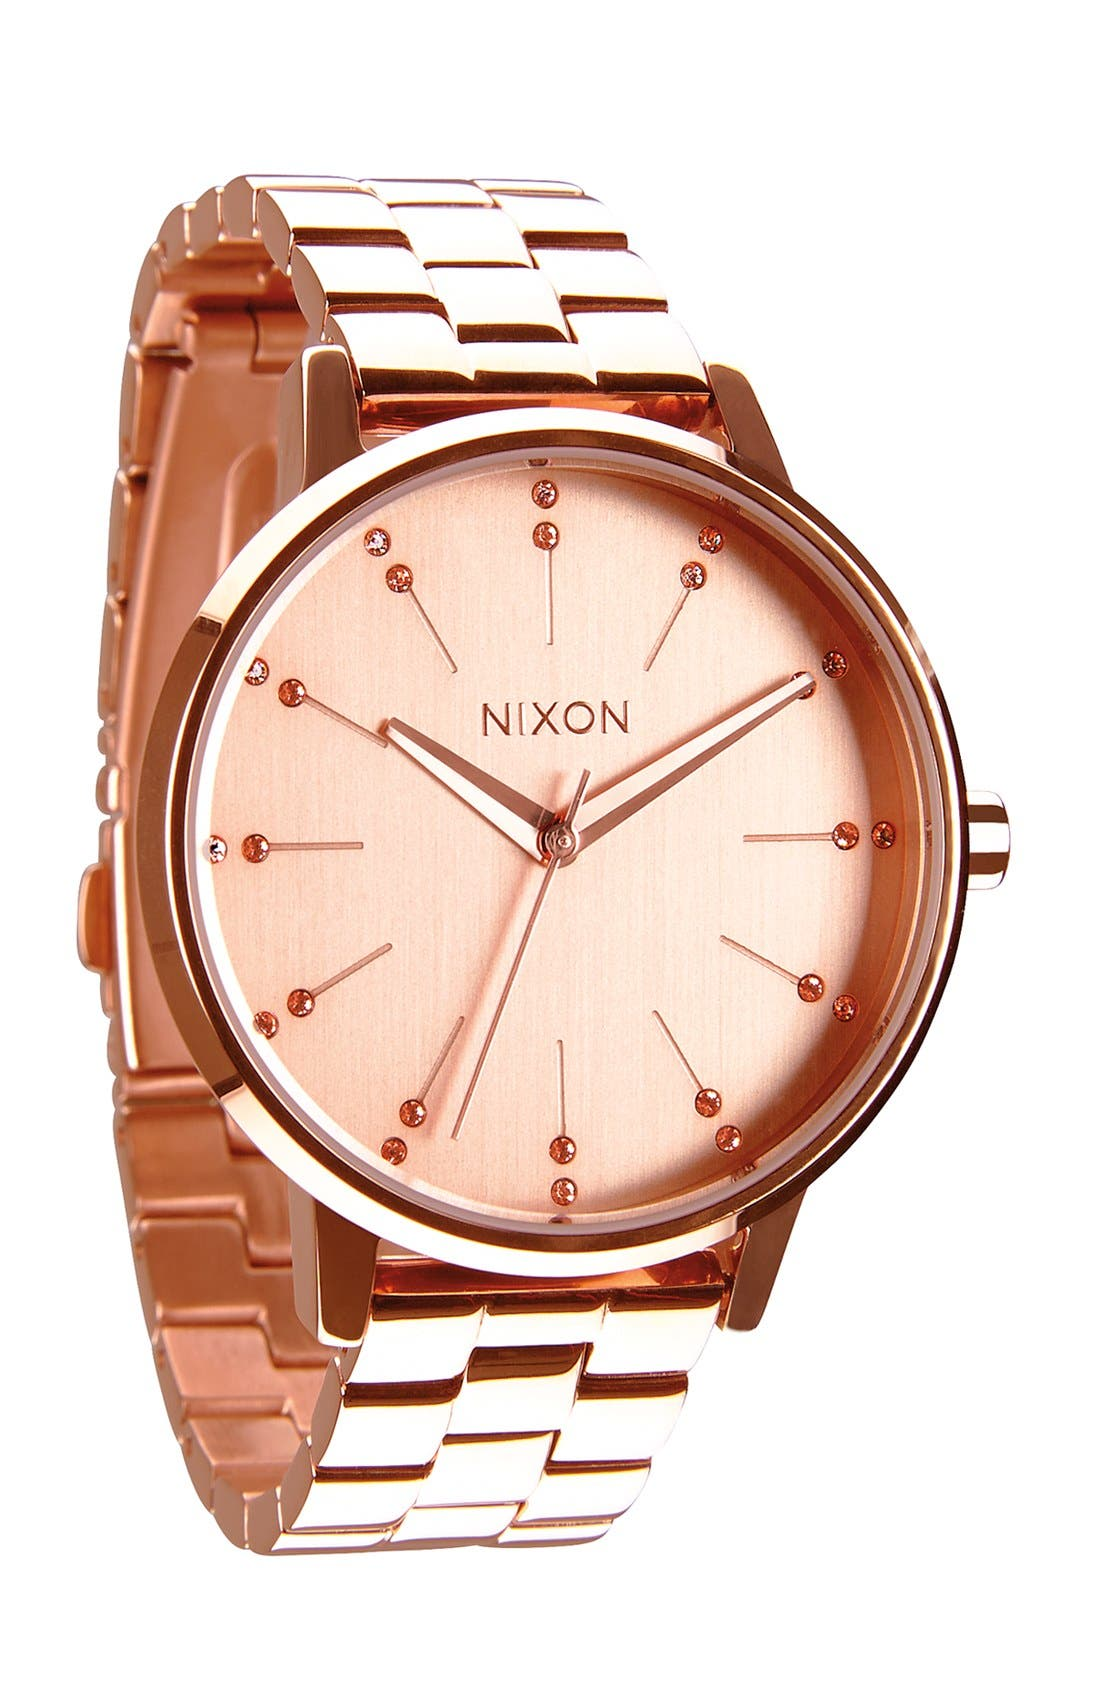 Main Image - Nixon 'Kensington' Crystal Bracelet Watch, 37mm